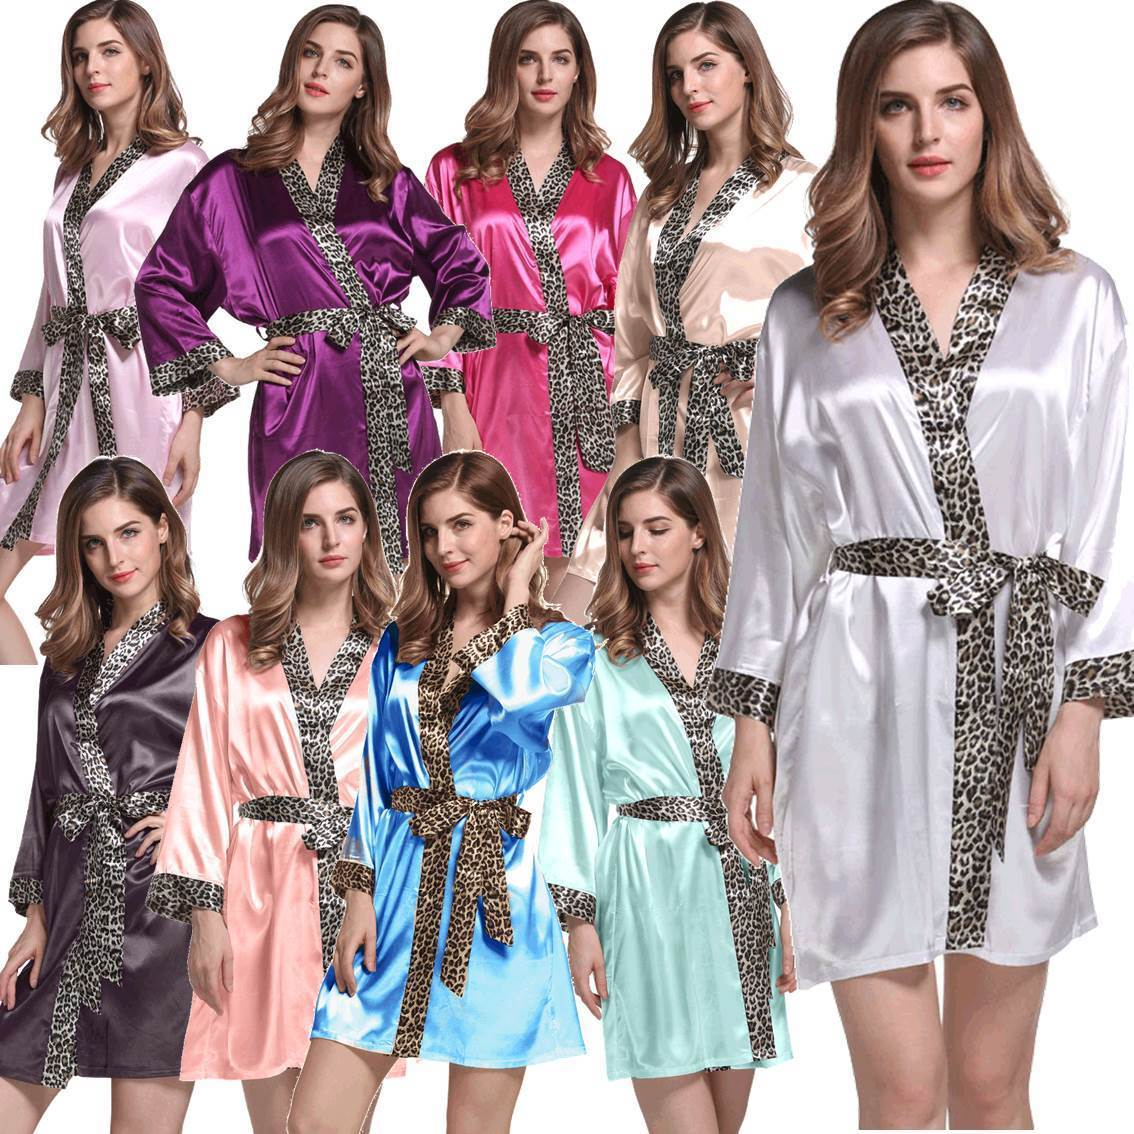 e0ff0c189d Bridal Party Robes Leopard Trim Satin Kimono Gowns